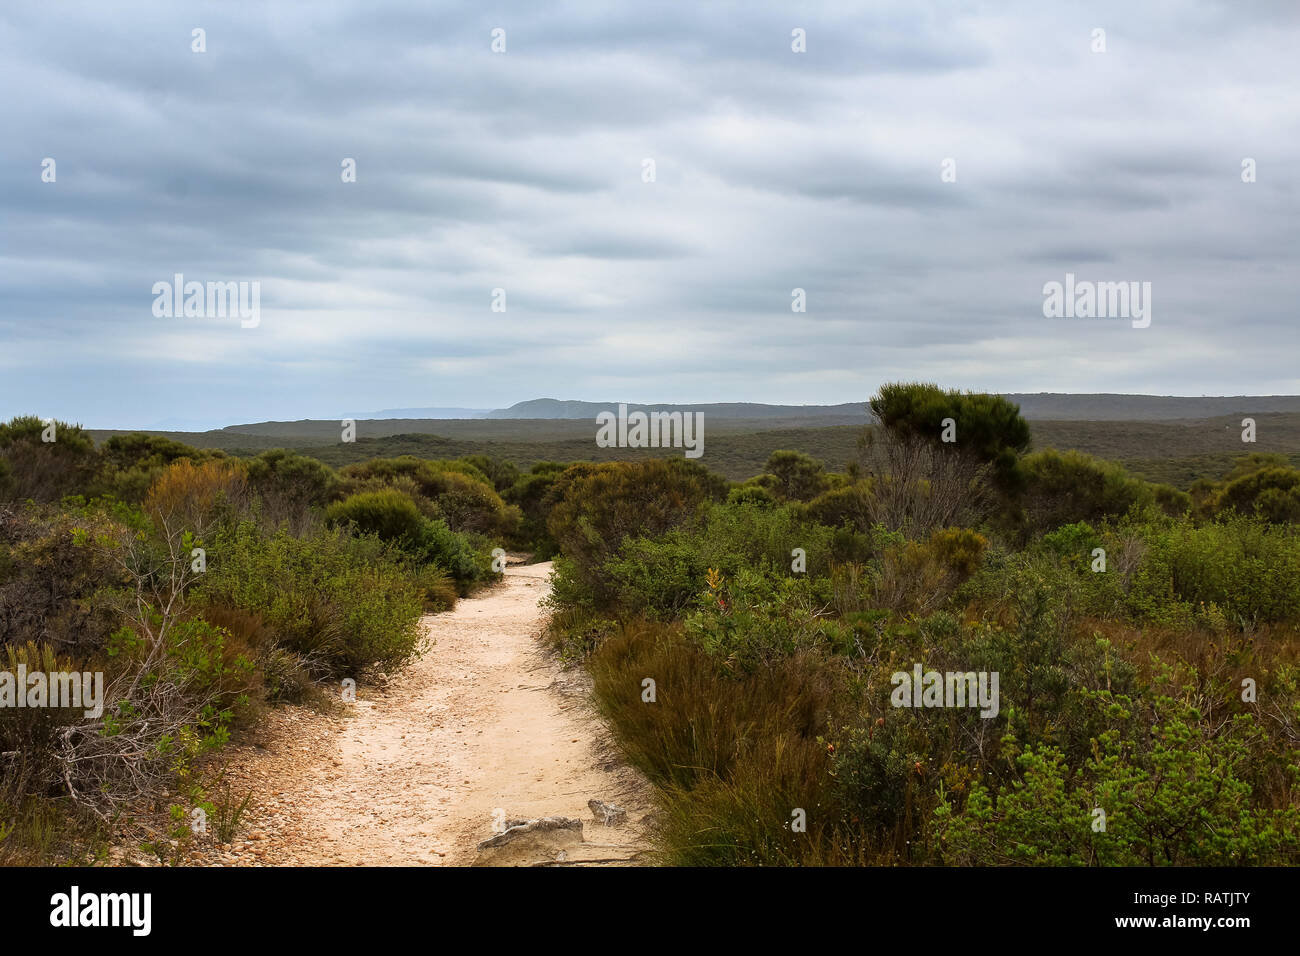 Dusty lonely path through dry vegetation with dramatic sky in Australian spring (Royal National Park, Australia) - Stock Image